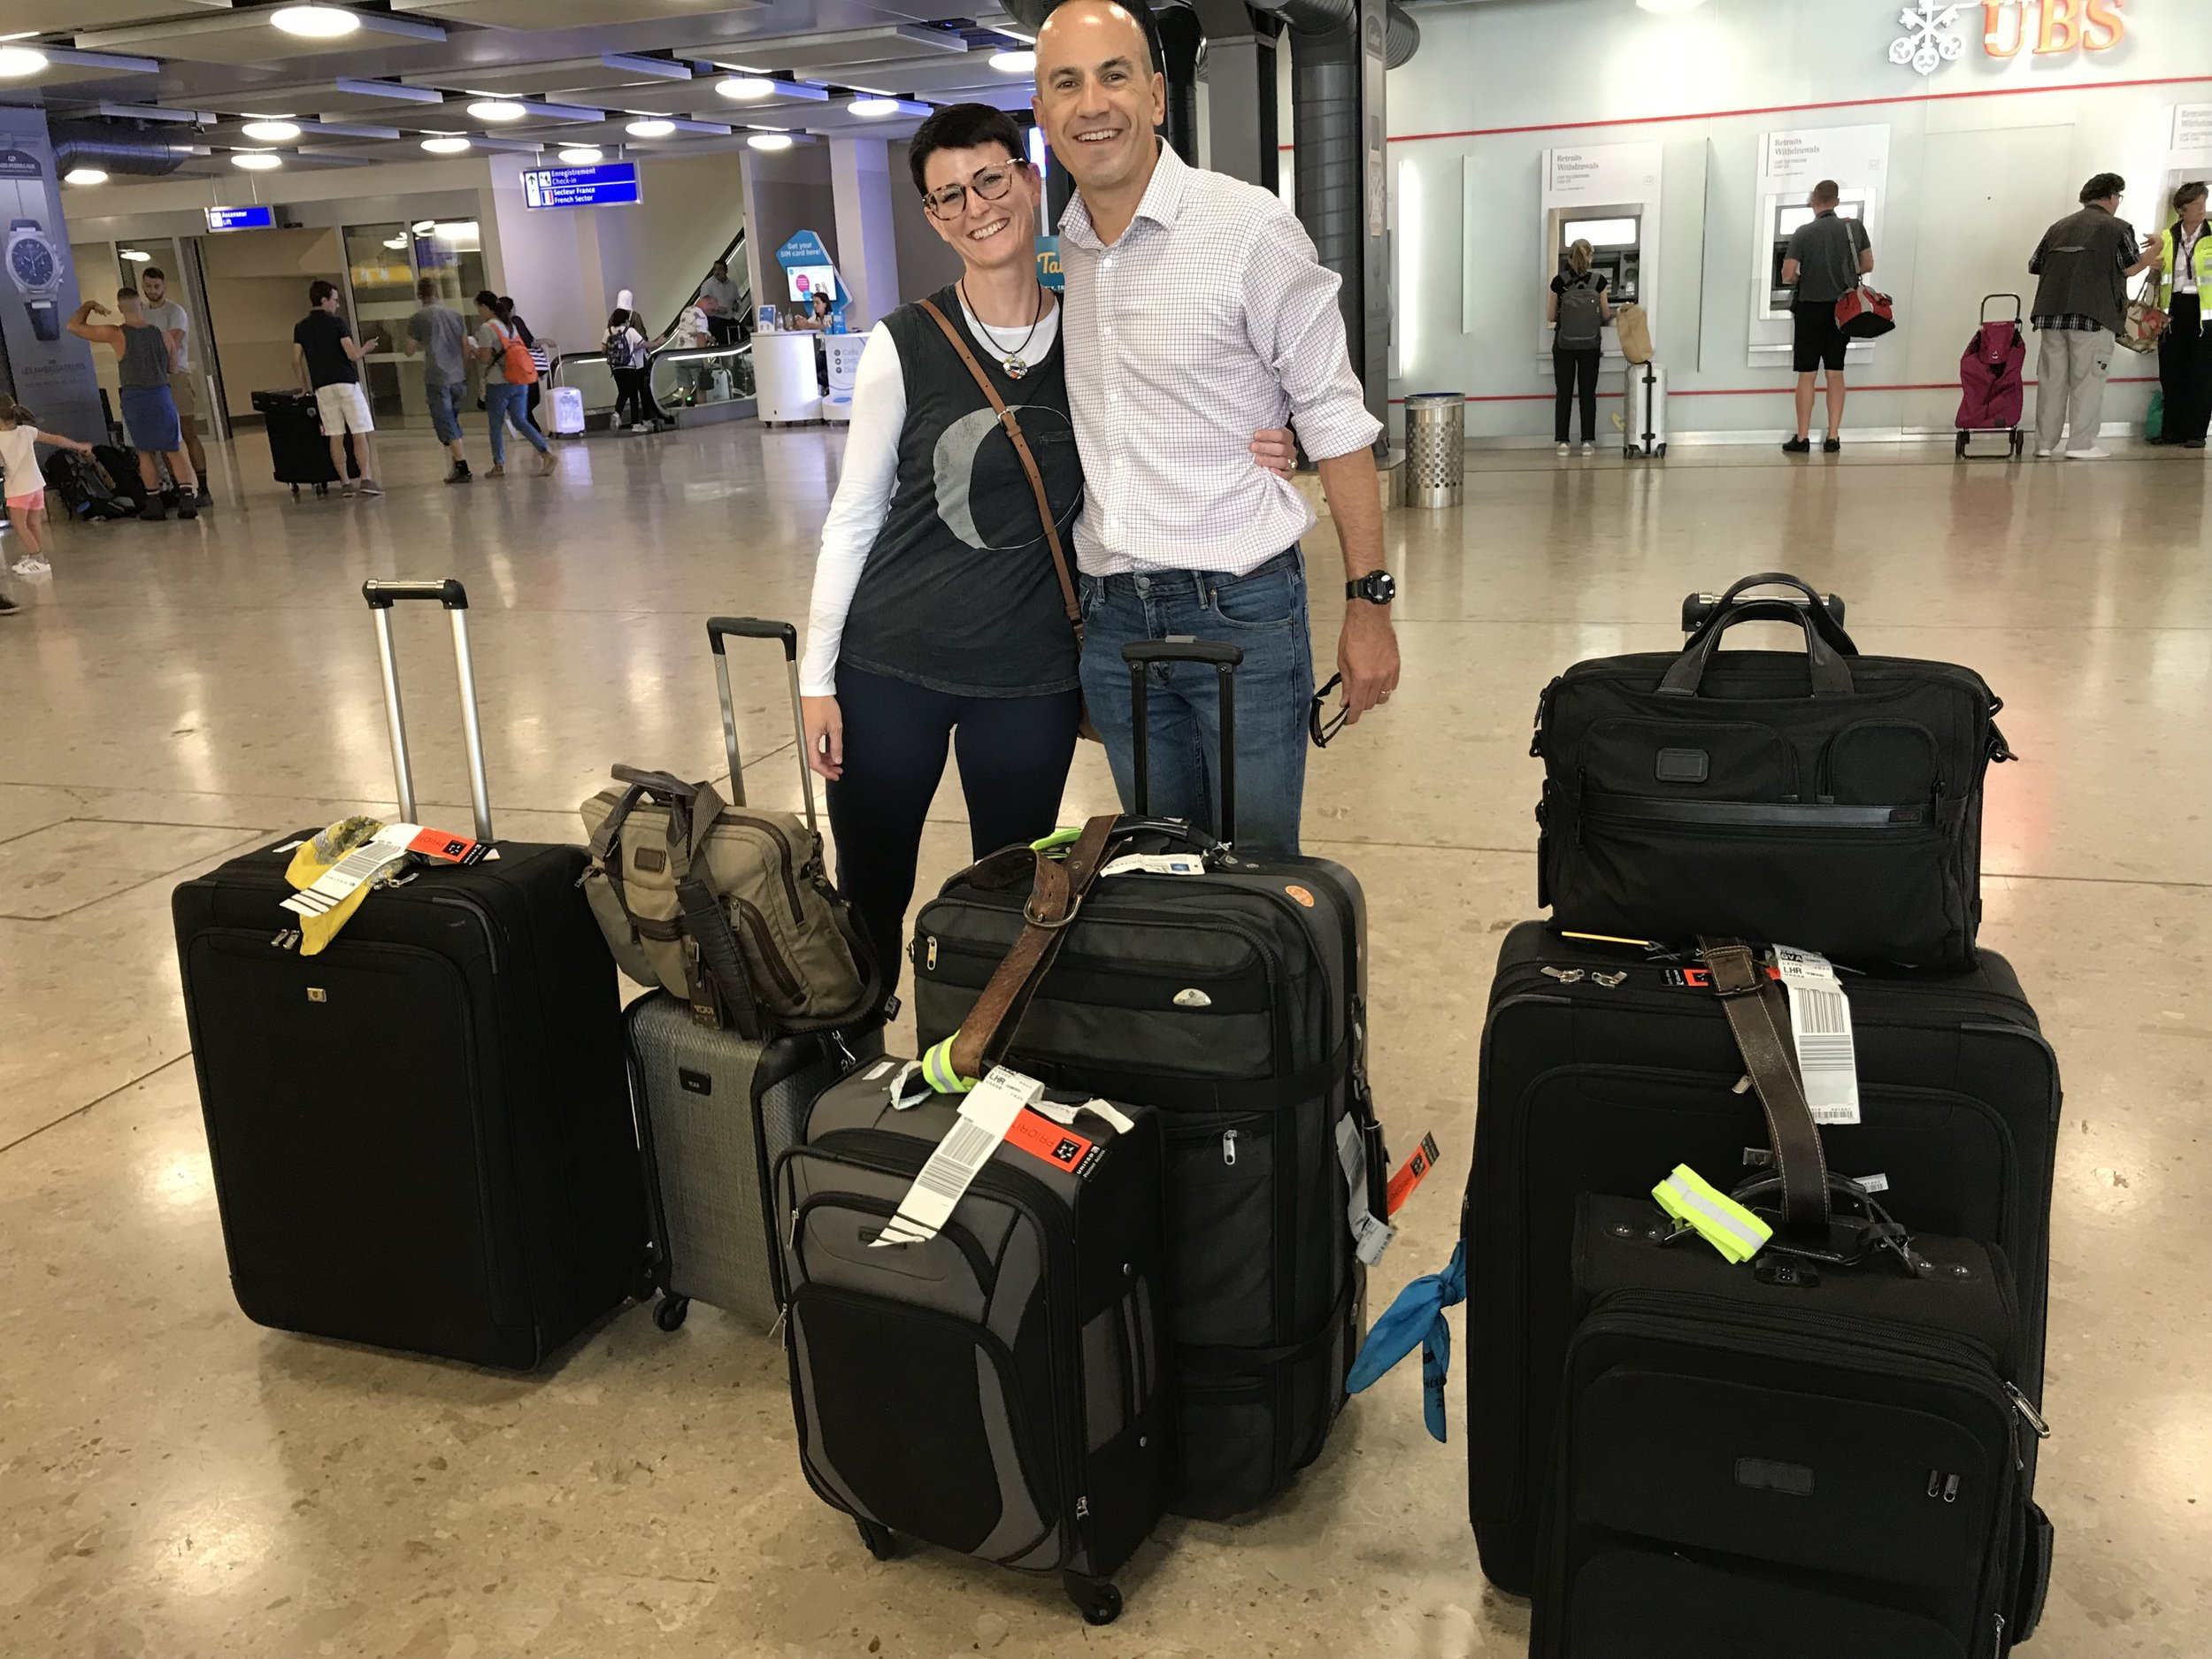 Leslie and Arnaud upon arrival at Geneva Airport on our first day as residents of Switzerland. August 24, 2019.